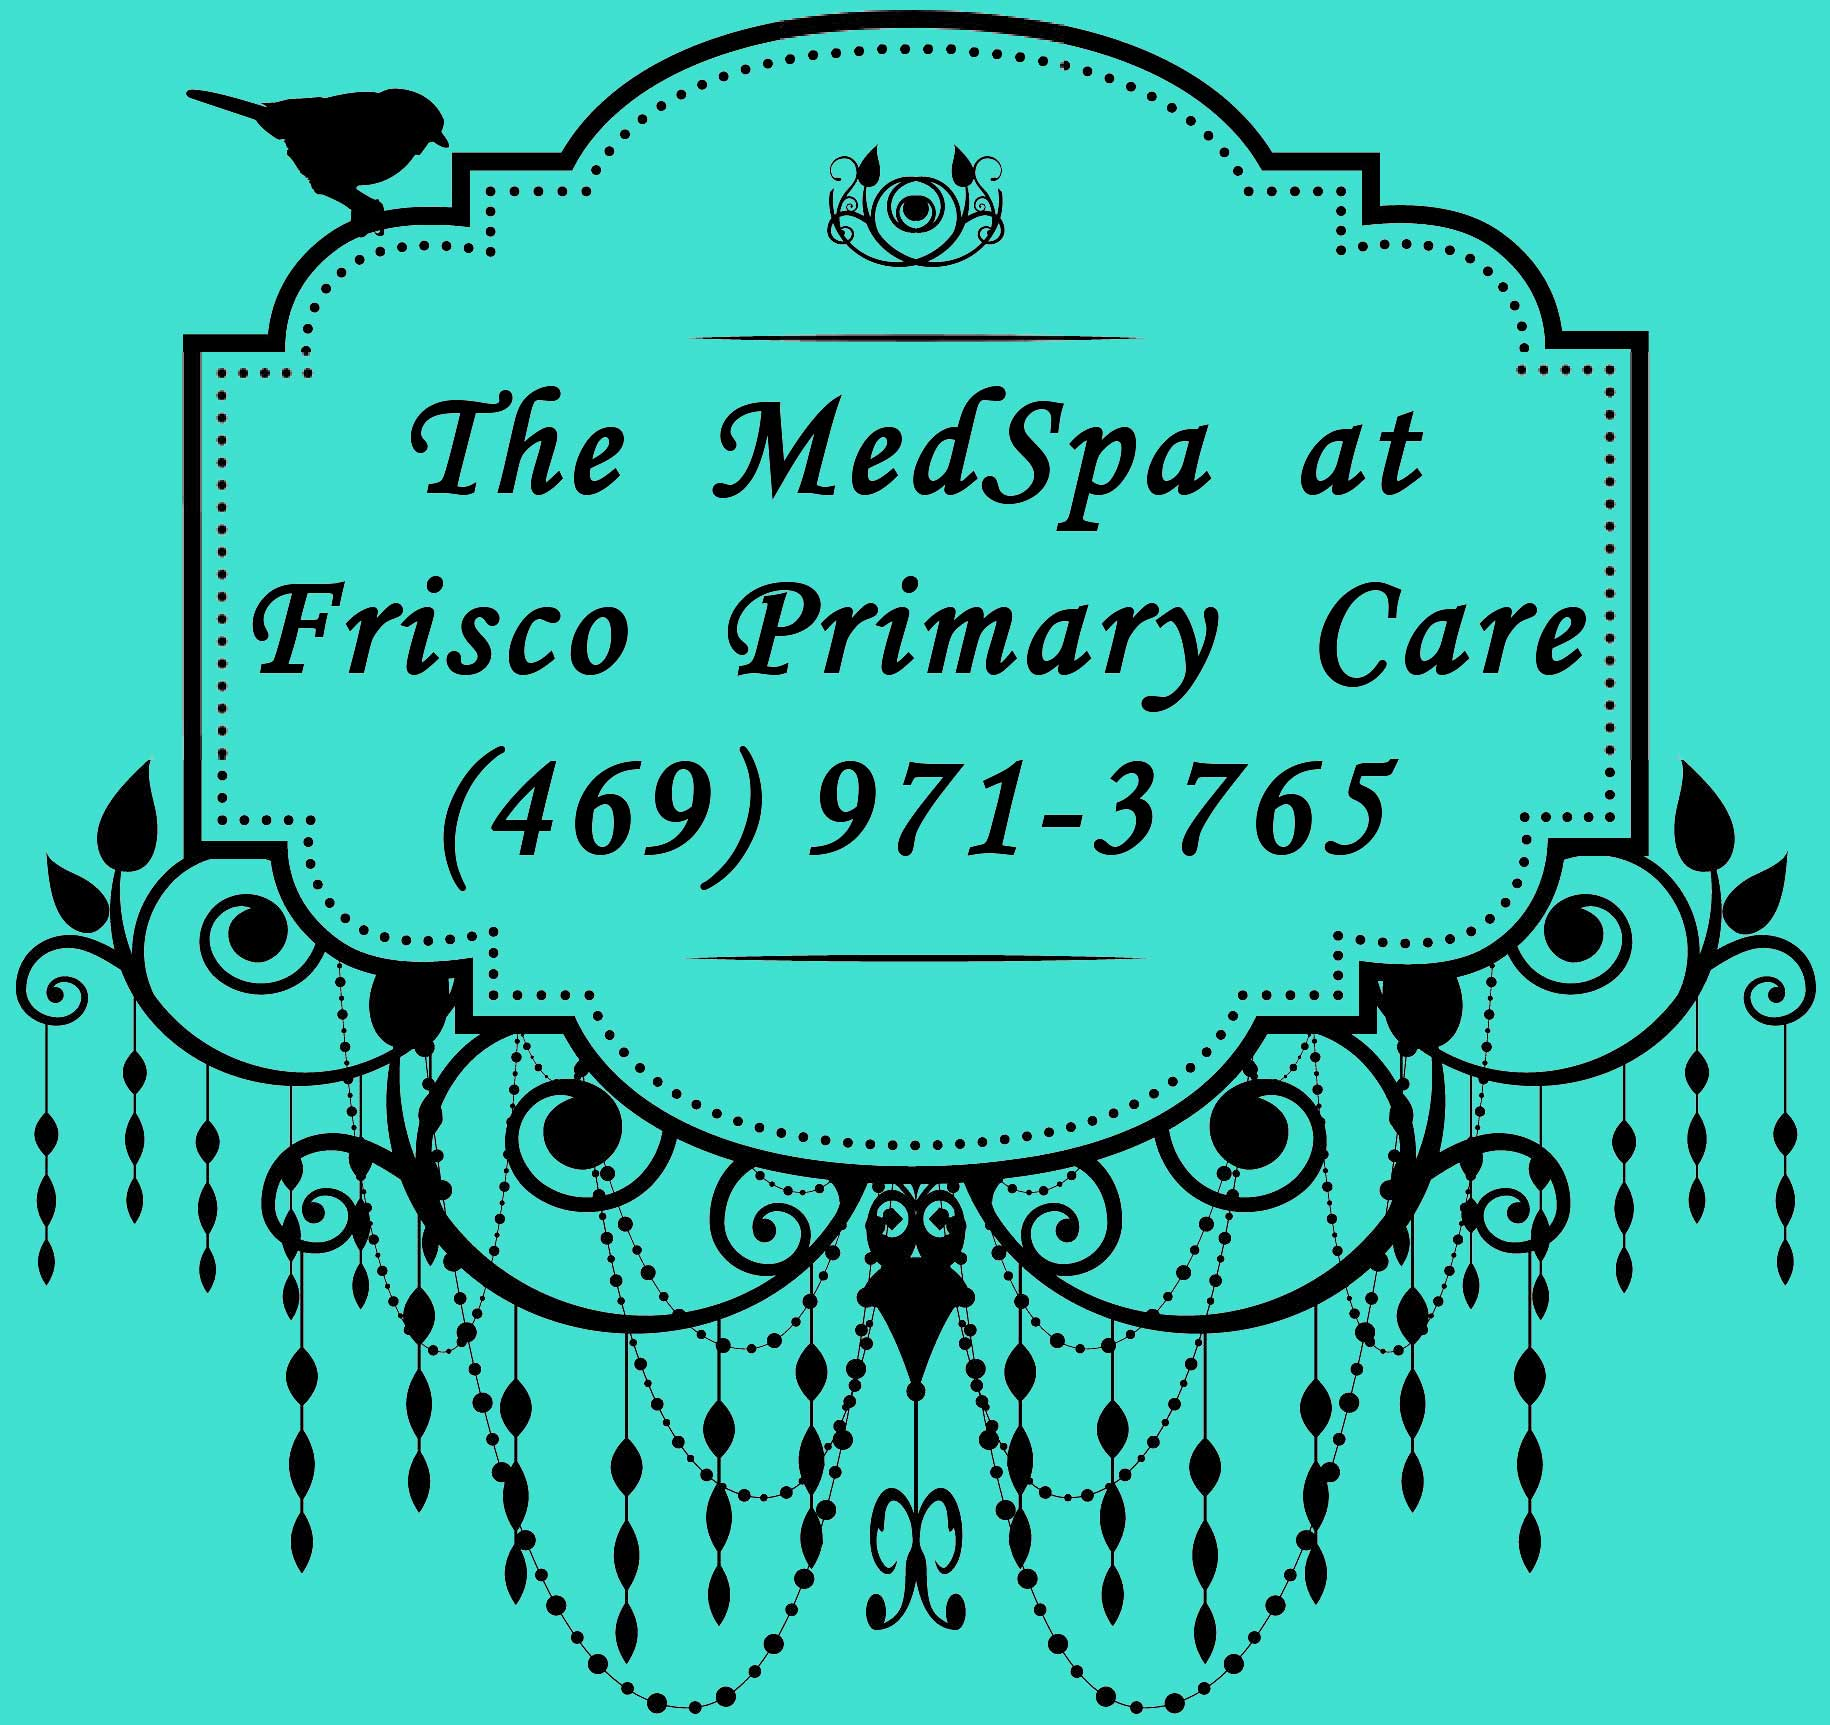 The MedSpa at Frisco Primary Care